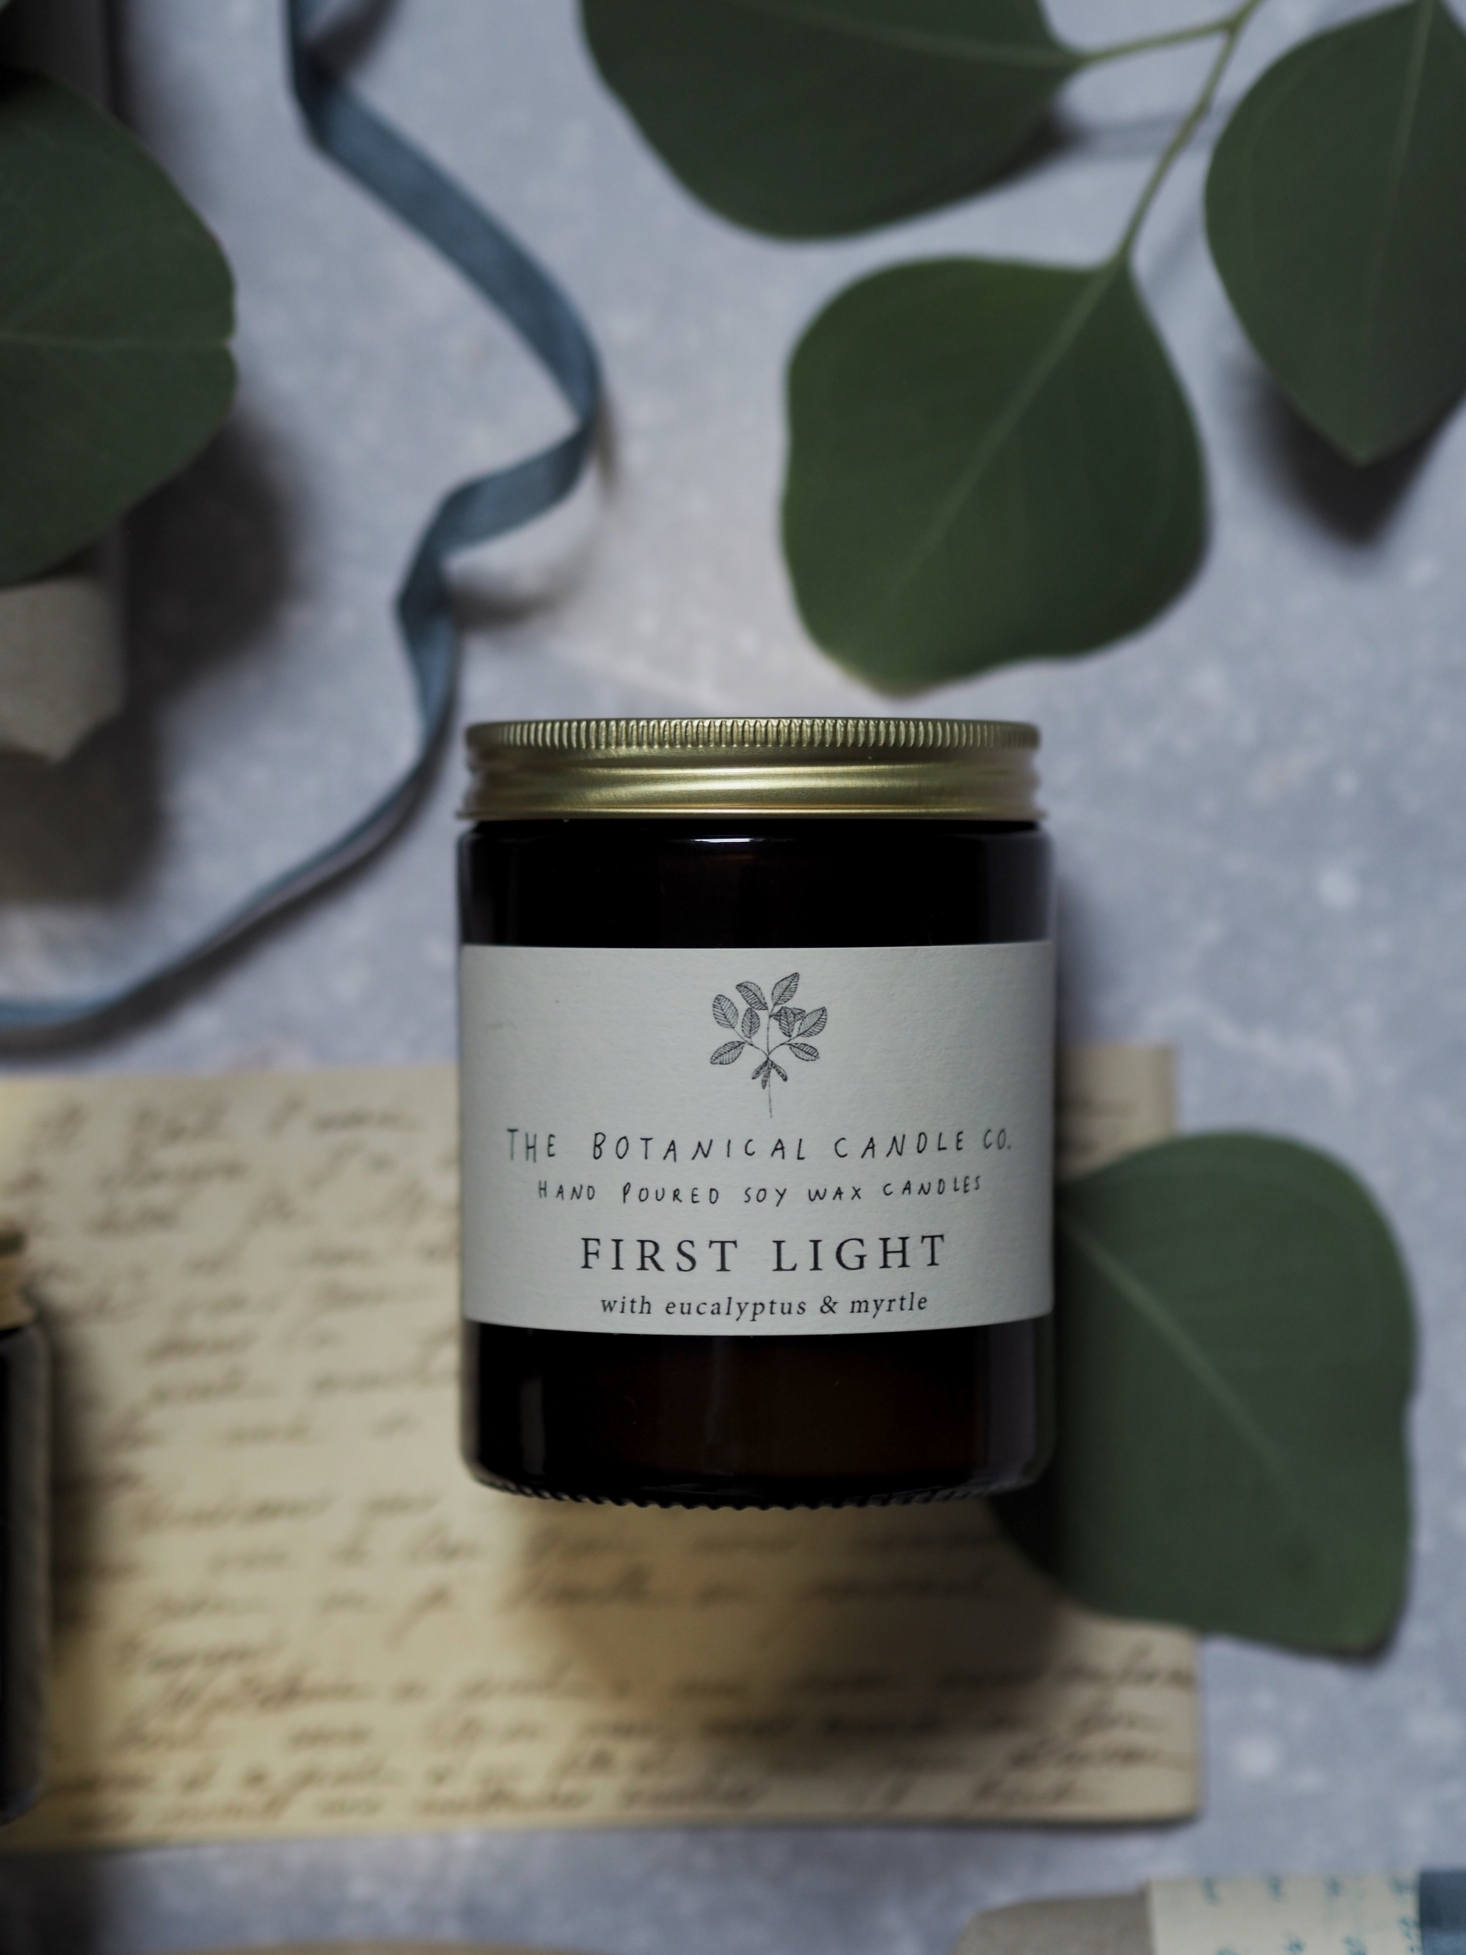 I also love the idea of these candles by UK-based Botanical Candle Co.: one for lighting early in the morning—First Light, shown here, with notes of eucalyptus and myrtle, another for lighting &#8